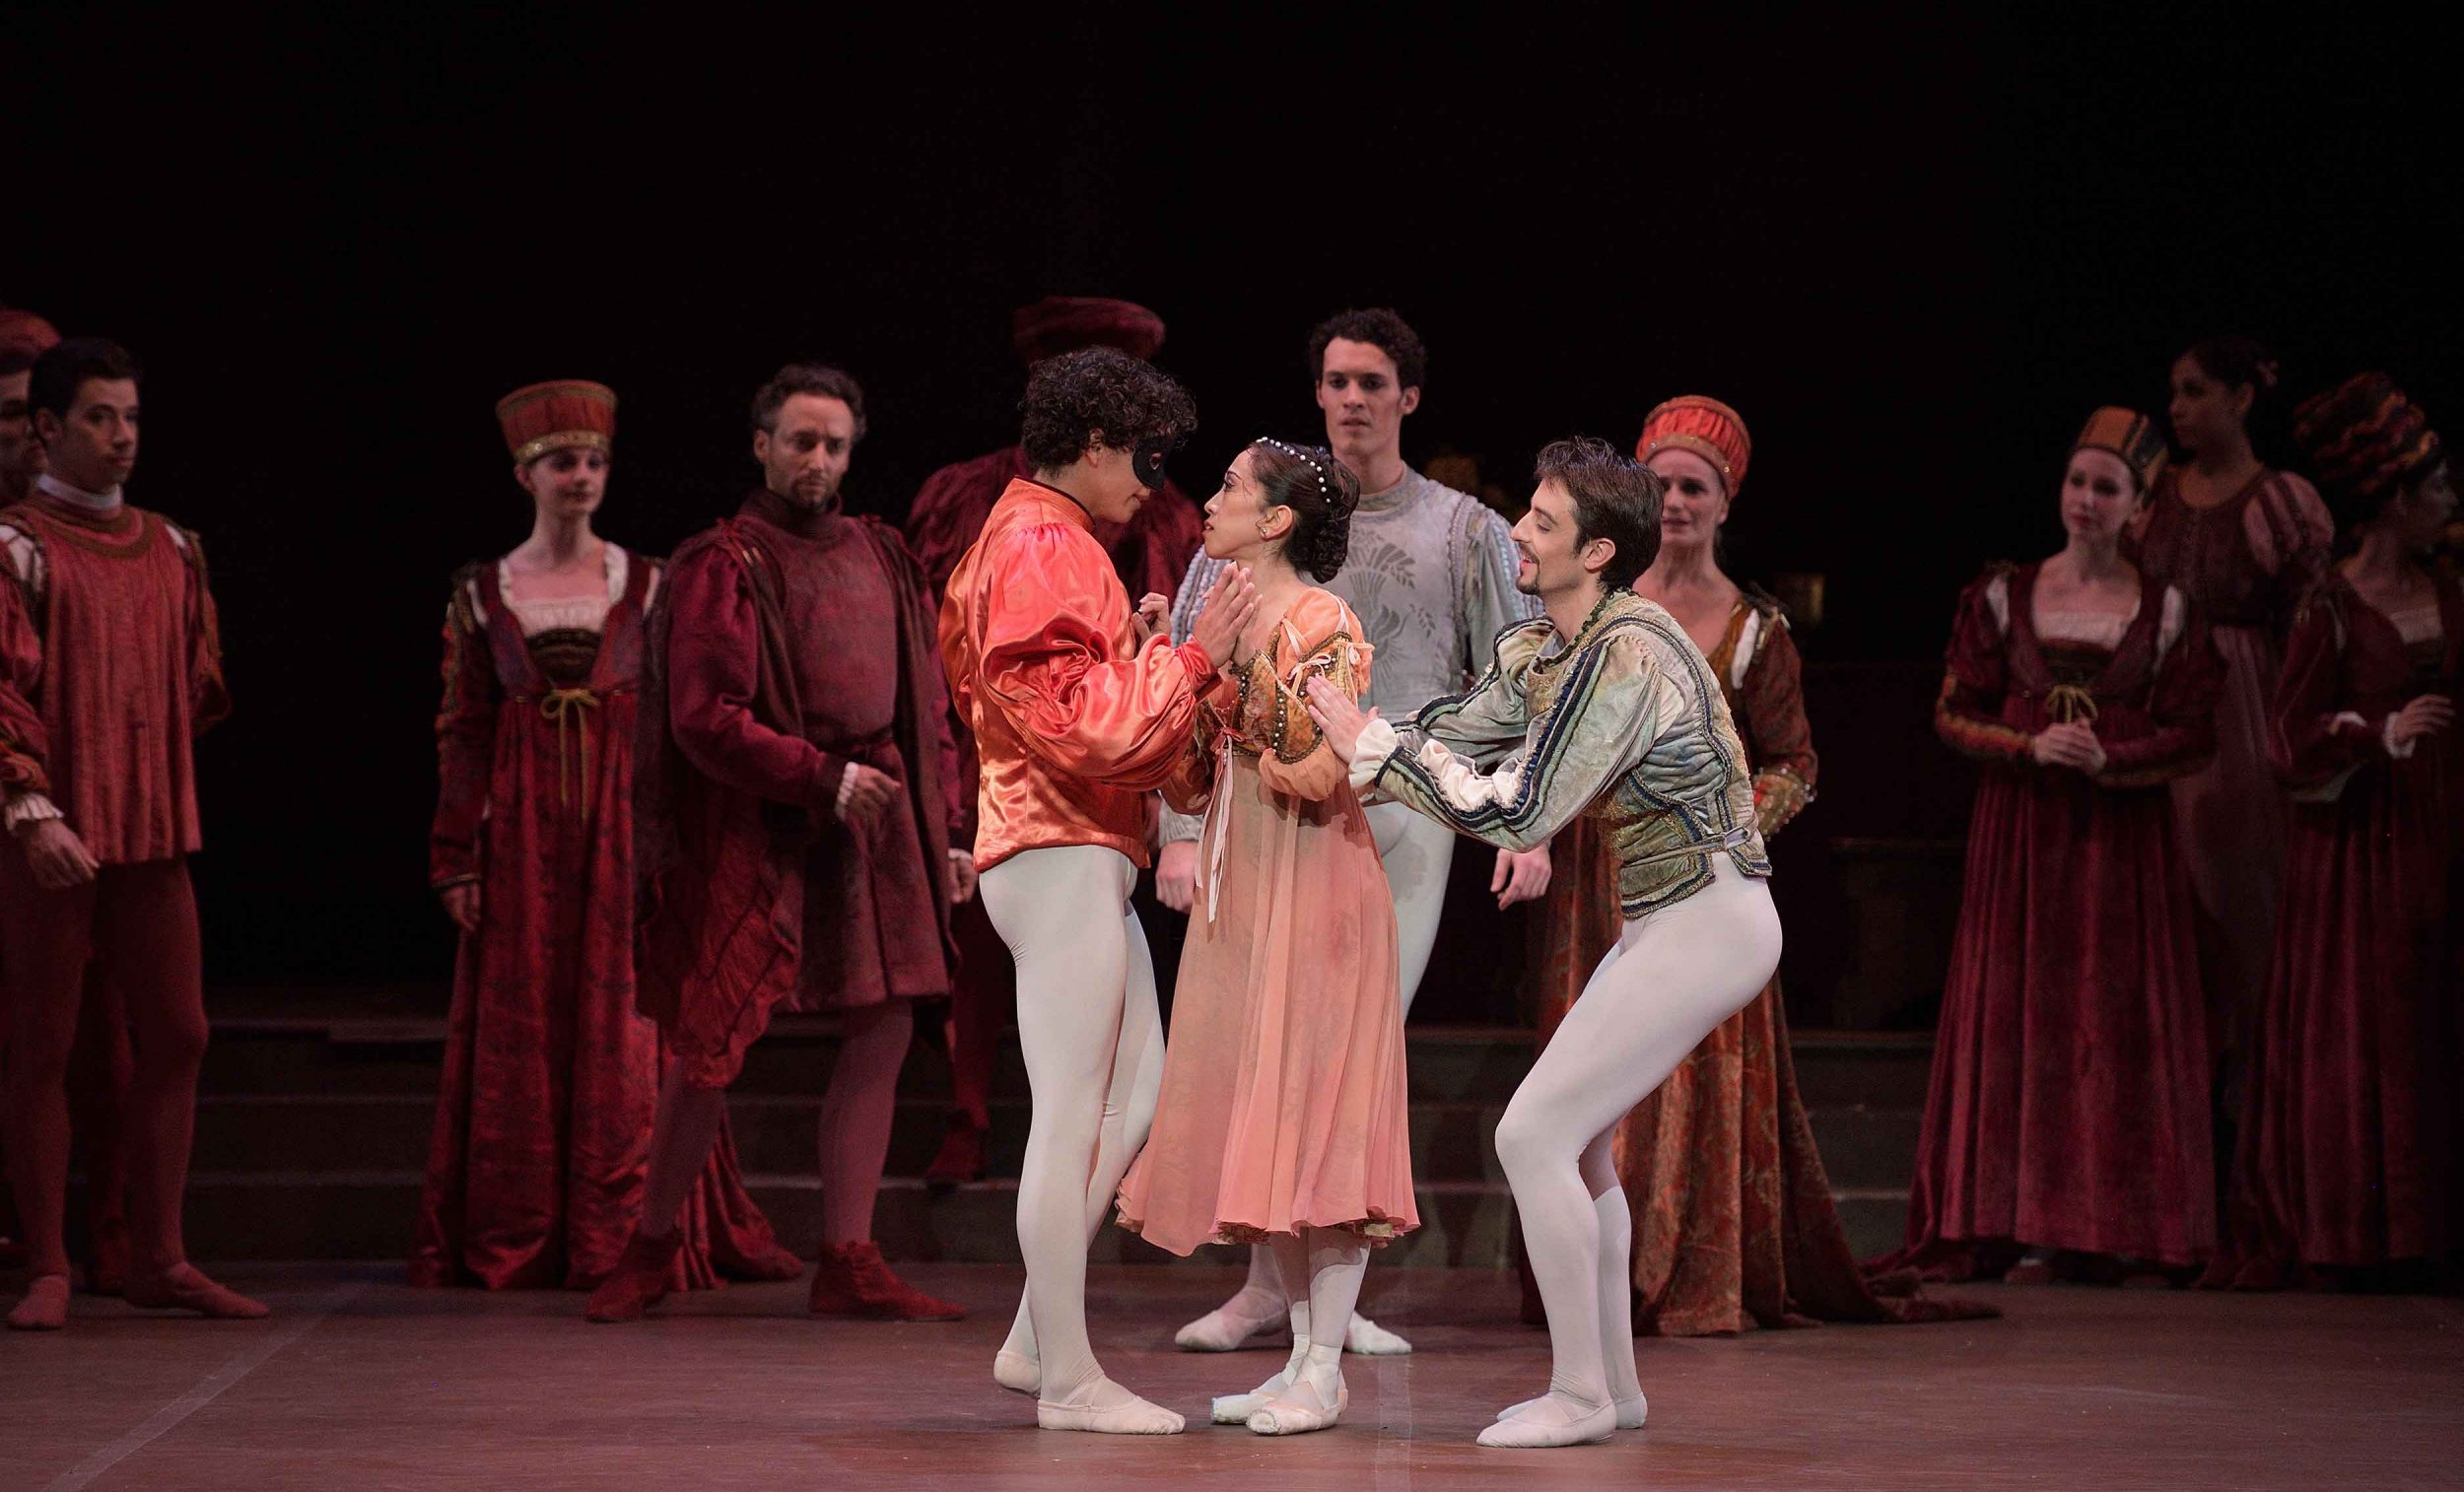 Erina-Takahashi-as-Juliet,-Isaac-Hernandez-as-Romeo,-and-Fernando-Bufala-as-Mercution-in-Romeo-&-Juliet-©-Laurent-Liotardo